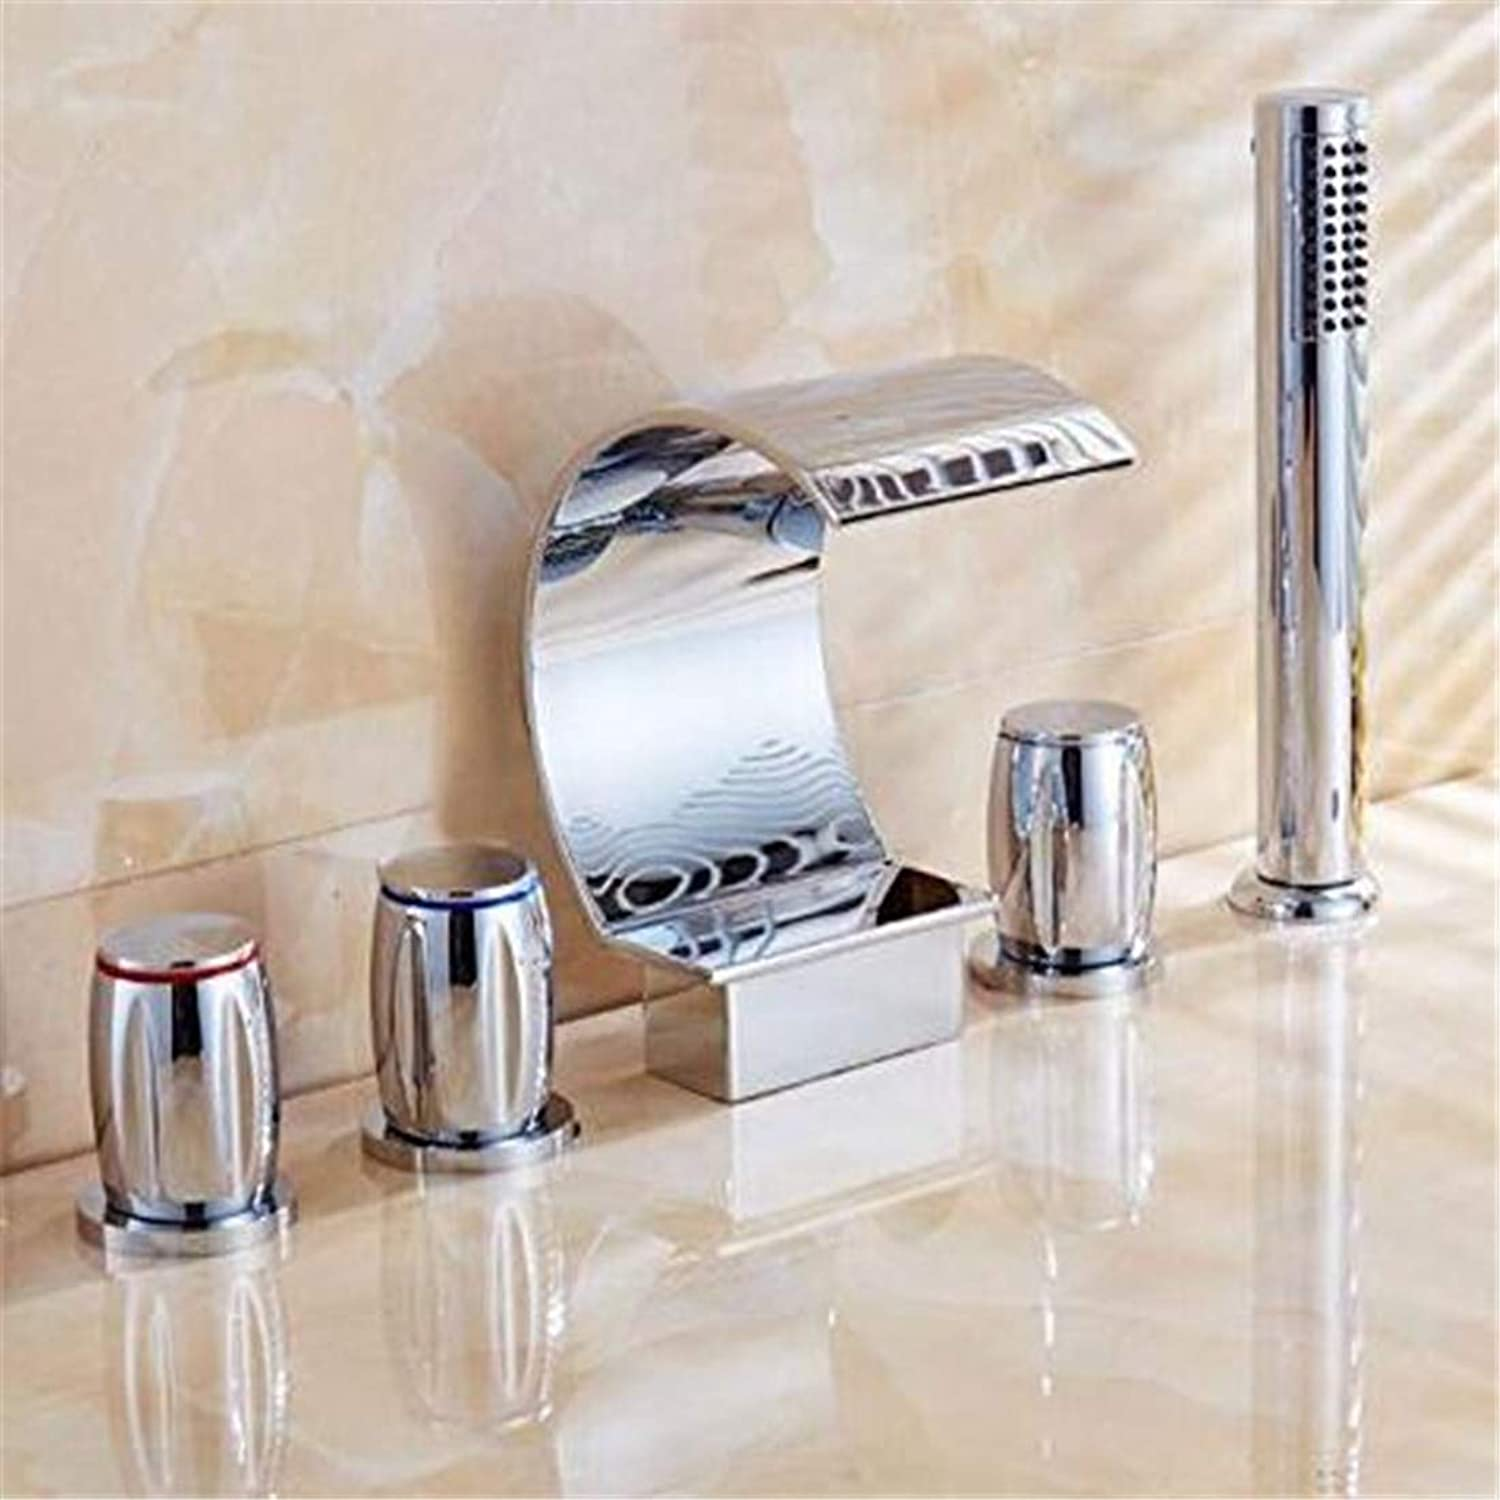 Chrome Kitchen Sink Tapfaucet Chrome Waterfall Spout Mixer Taps Chrome Brass Bathroom Shower Faucet with Handshower